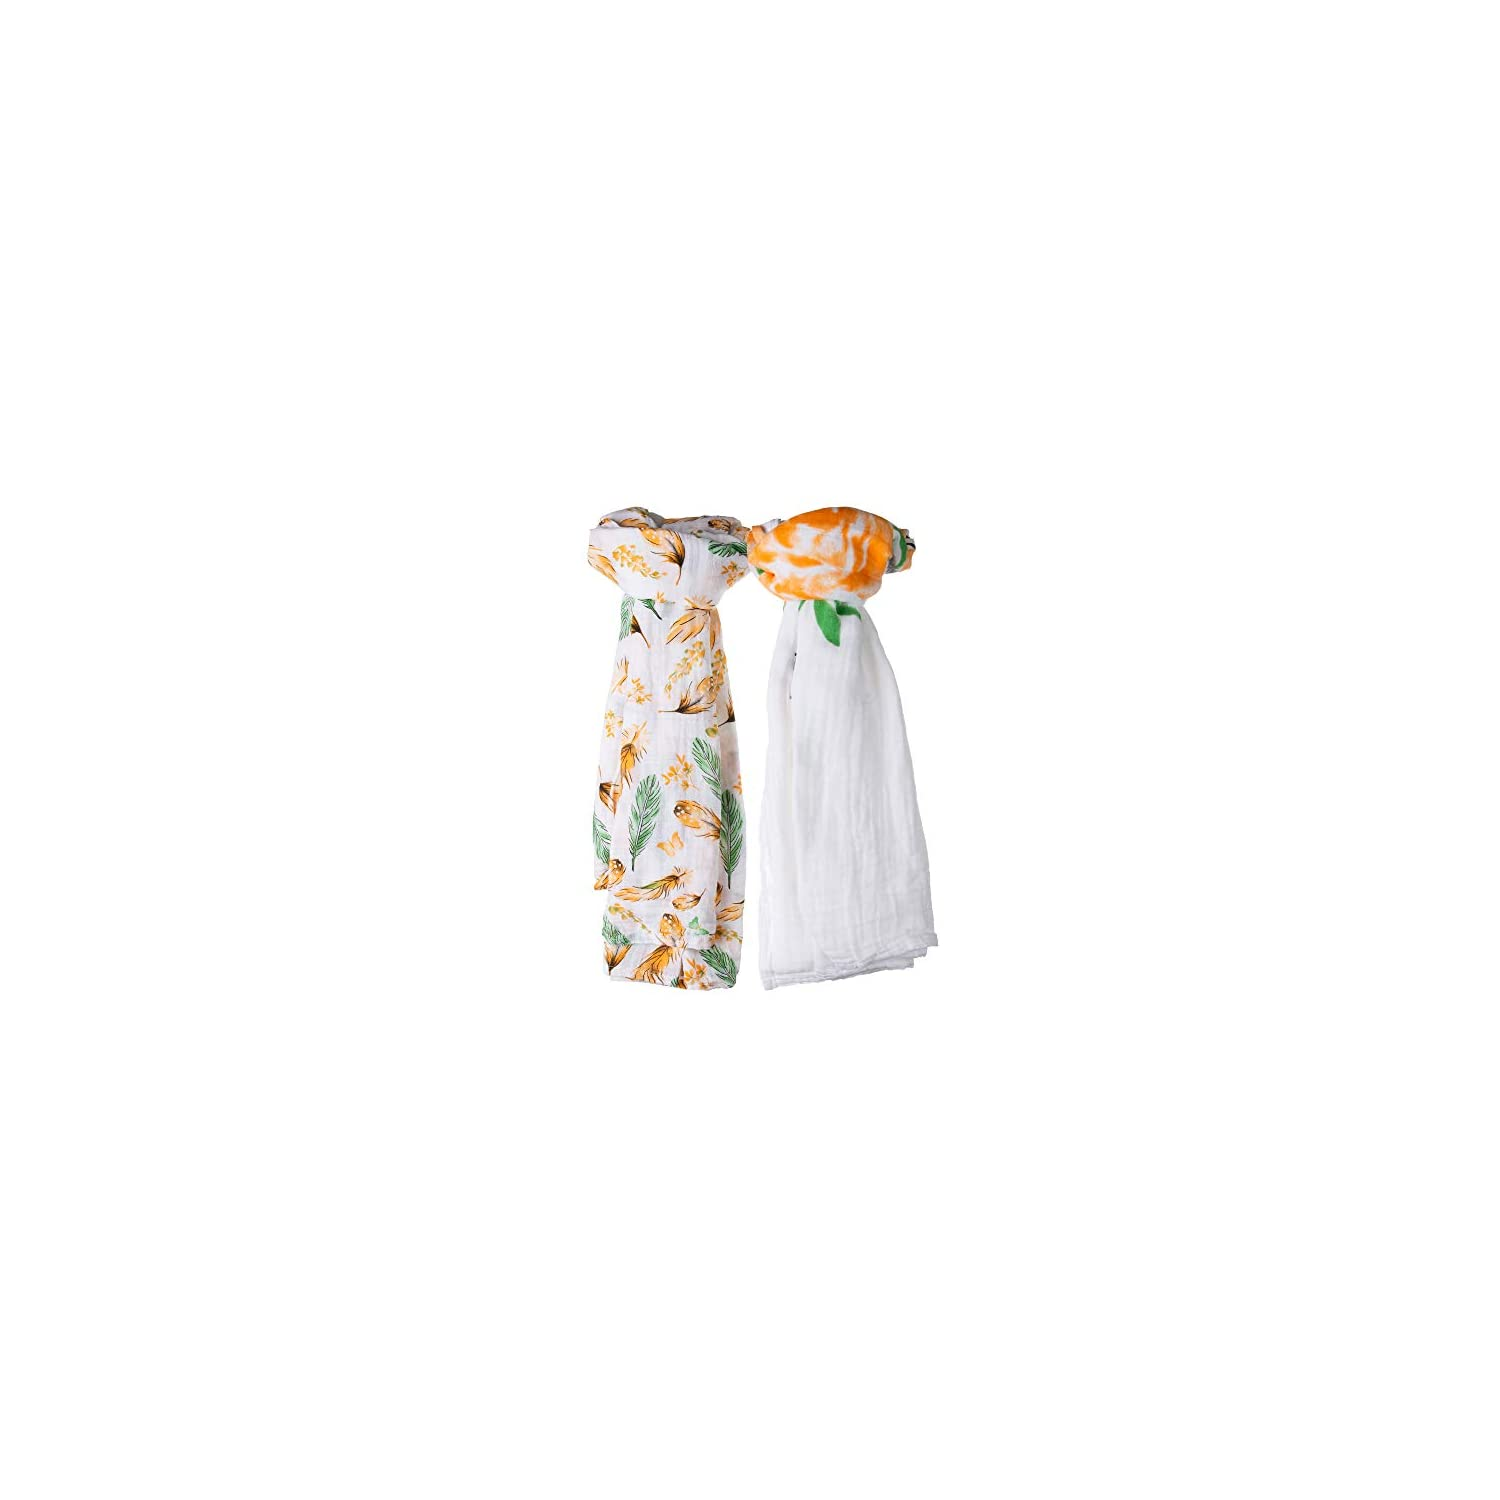 Millian Baby Muslin Swaddle Blankets for Boys and Girls (2-Pack) Large, Breathable, Cute Comfort | Swaddling for Infants, Newborns, Babies | Nursery, Crib, Stroller Use